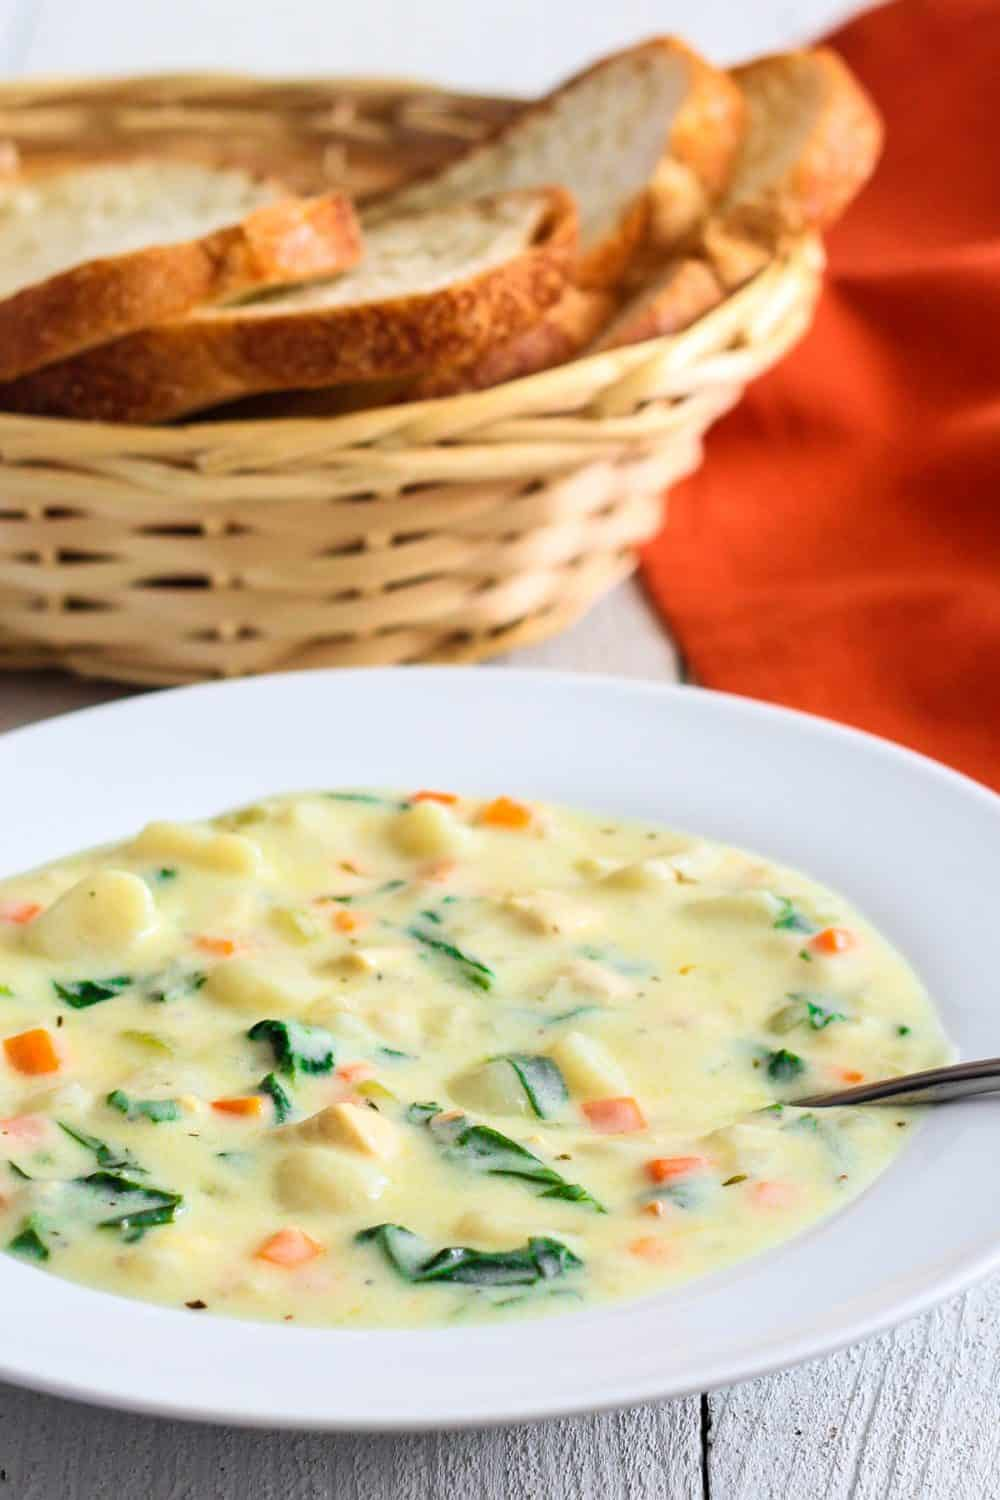 creamy chicken gnocchi soup with carrots and spinach in a white bowl with a basket of sliced bread beside it